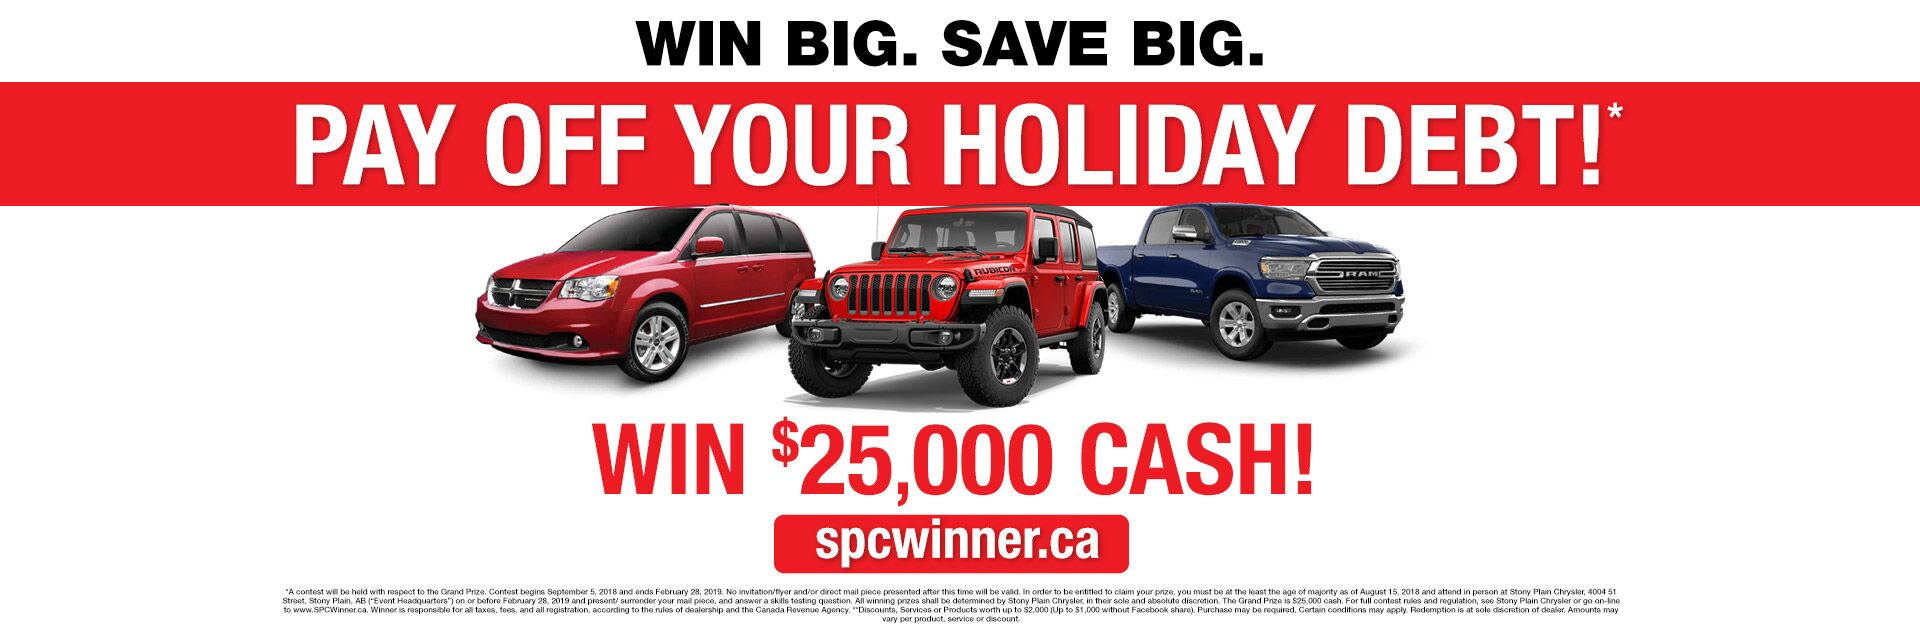 Win Big. Save Big.